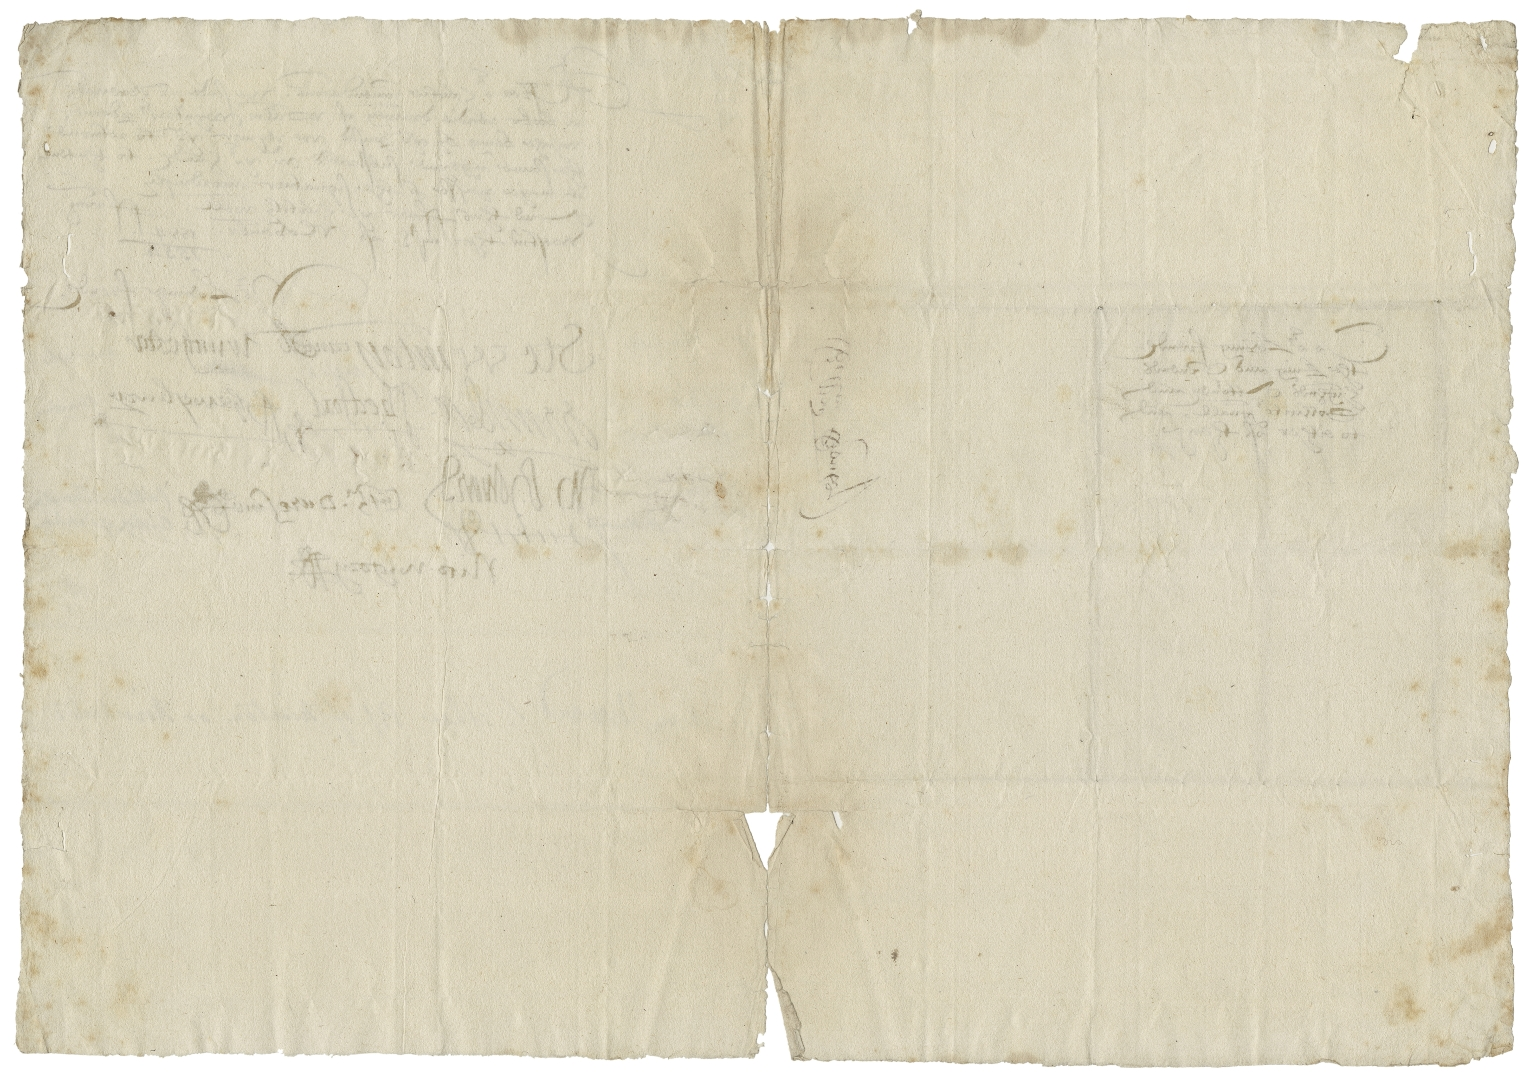 Letter signed from the Privy Council, Westminster, to the King and Queen's Attorney and Sollicitor General